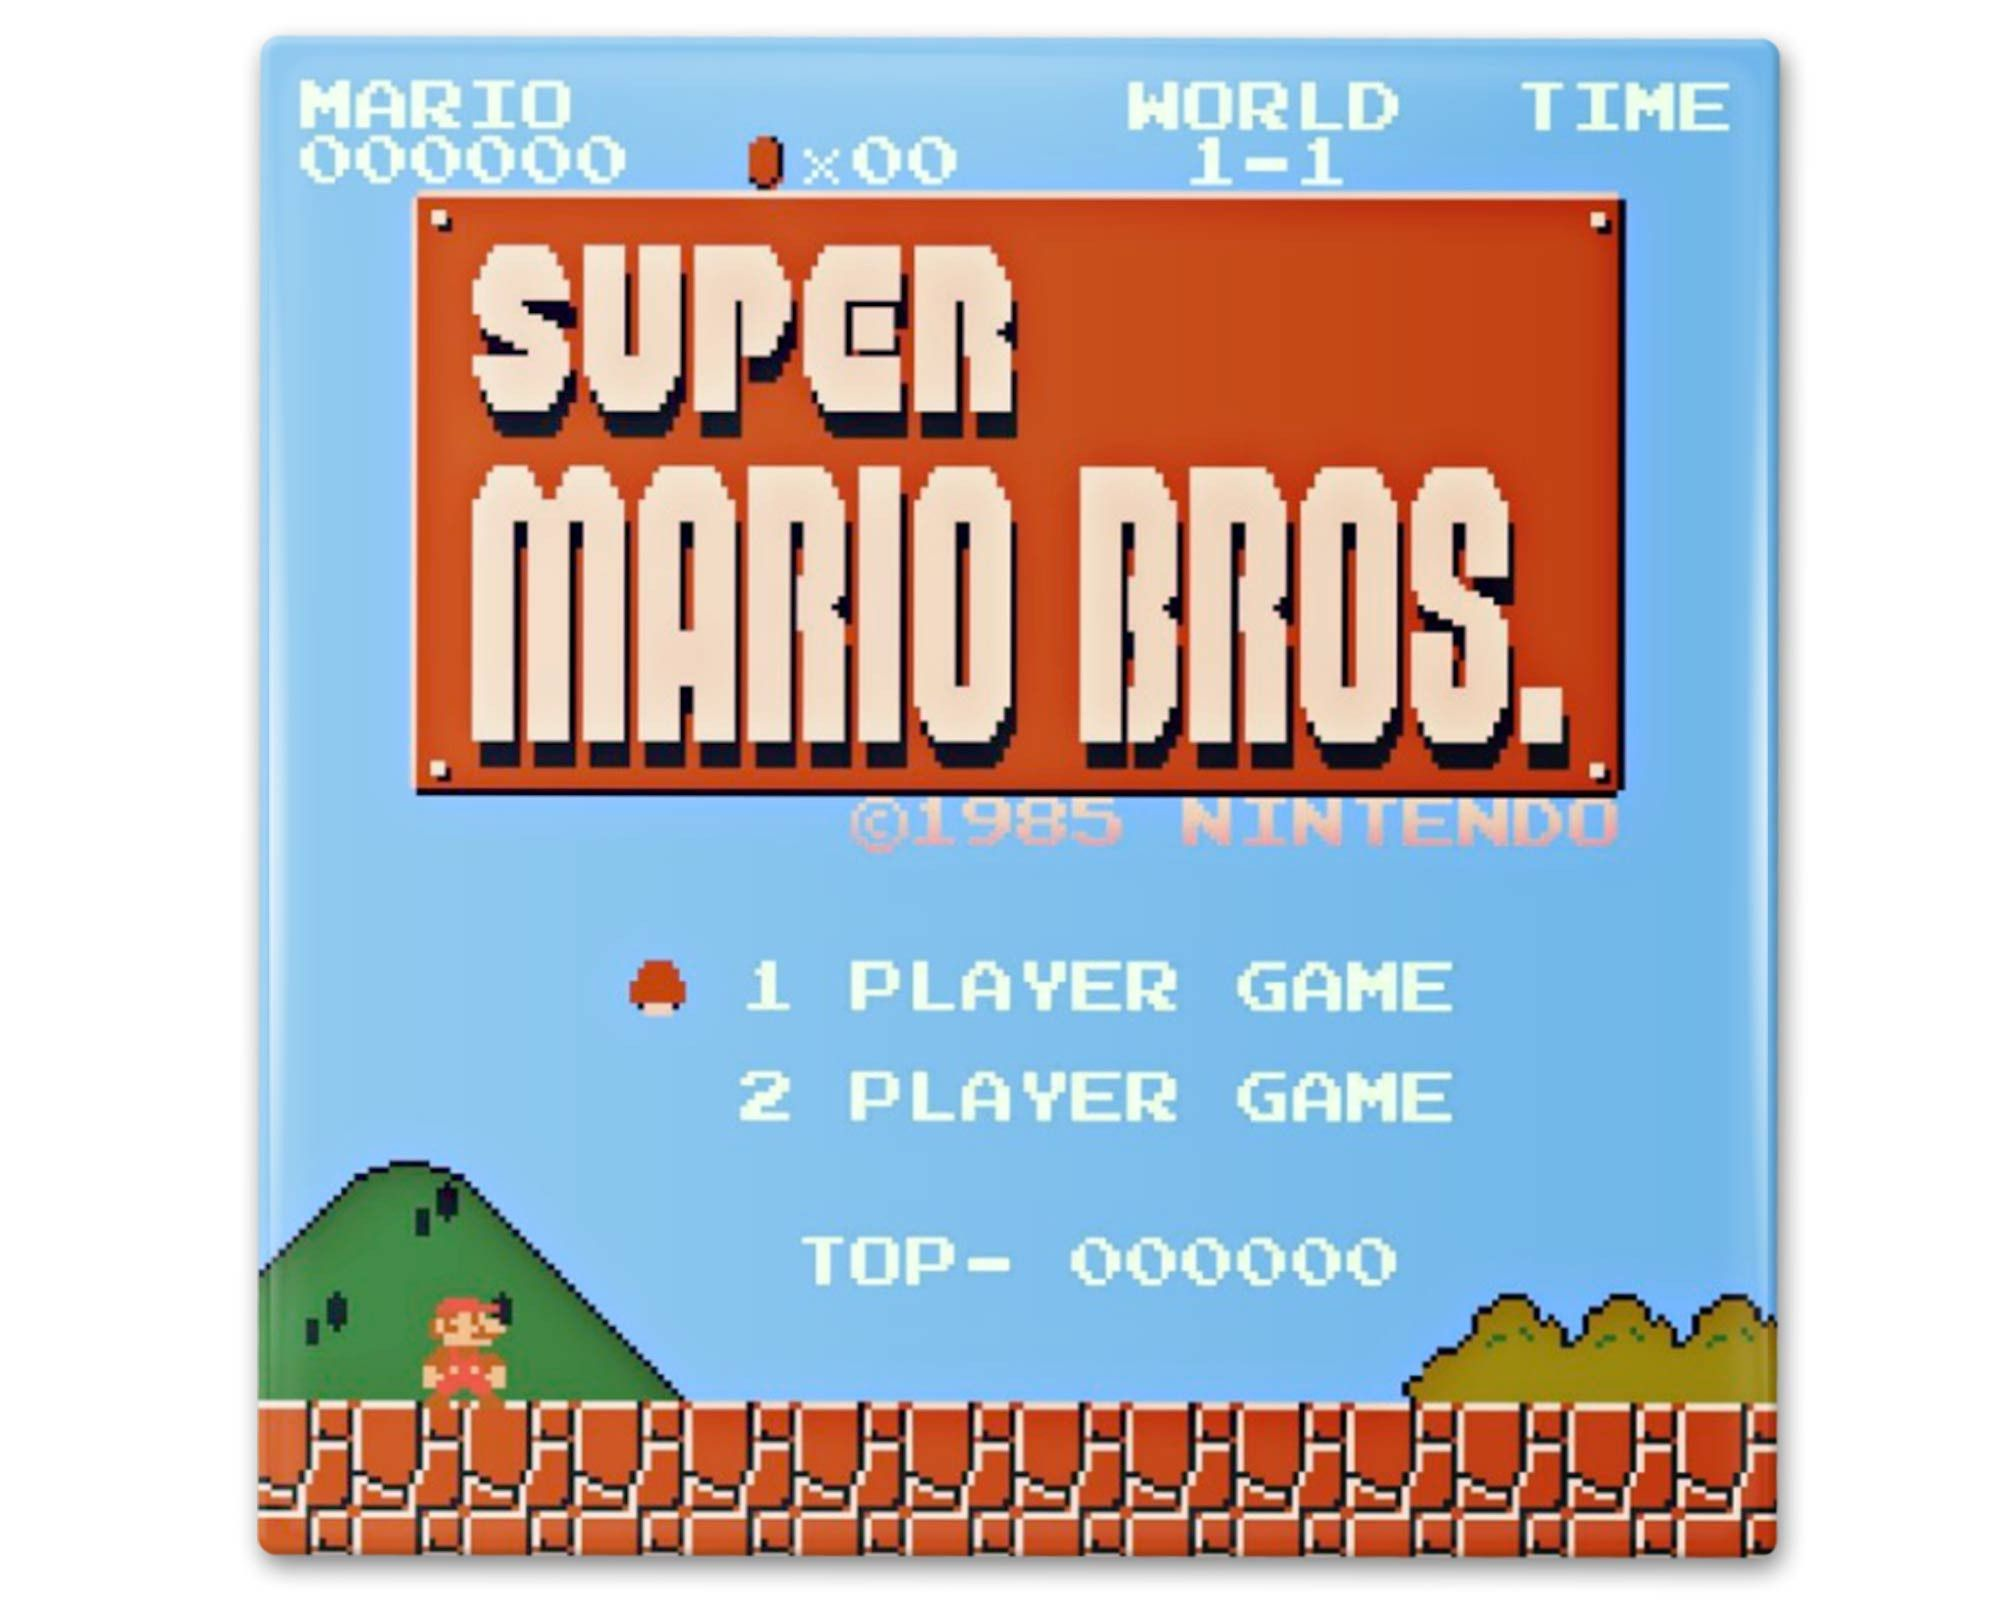 Classic Super Mario Start Screen Ceramic Coasters Vibrant